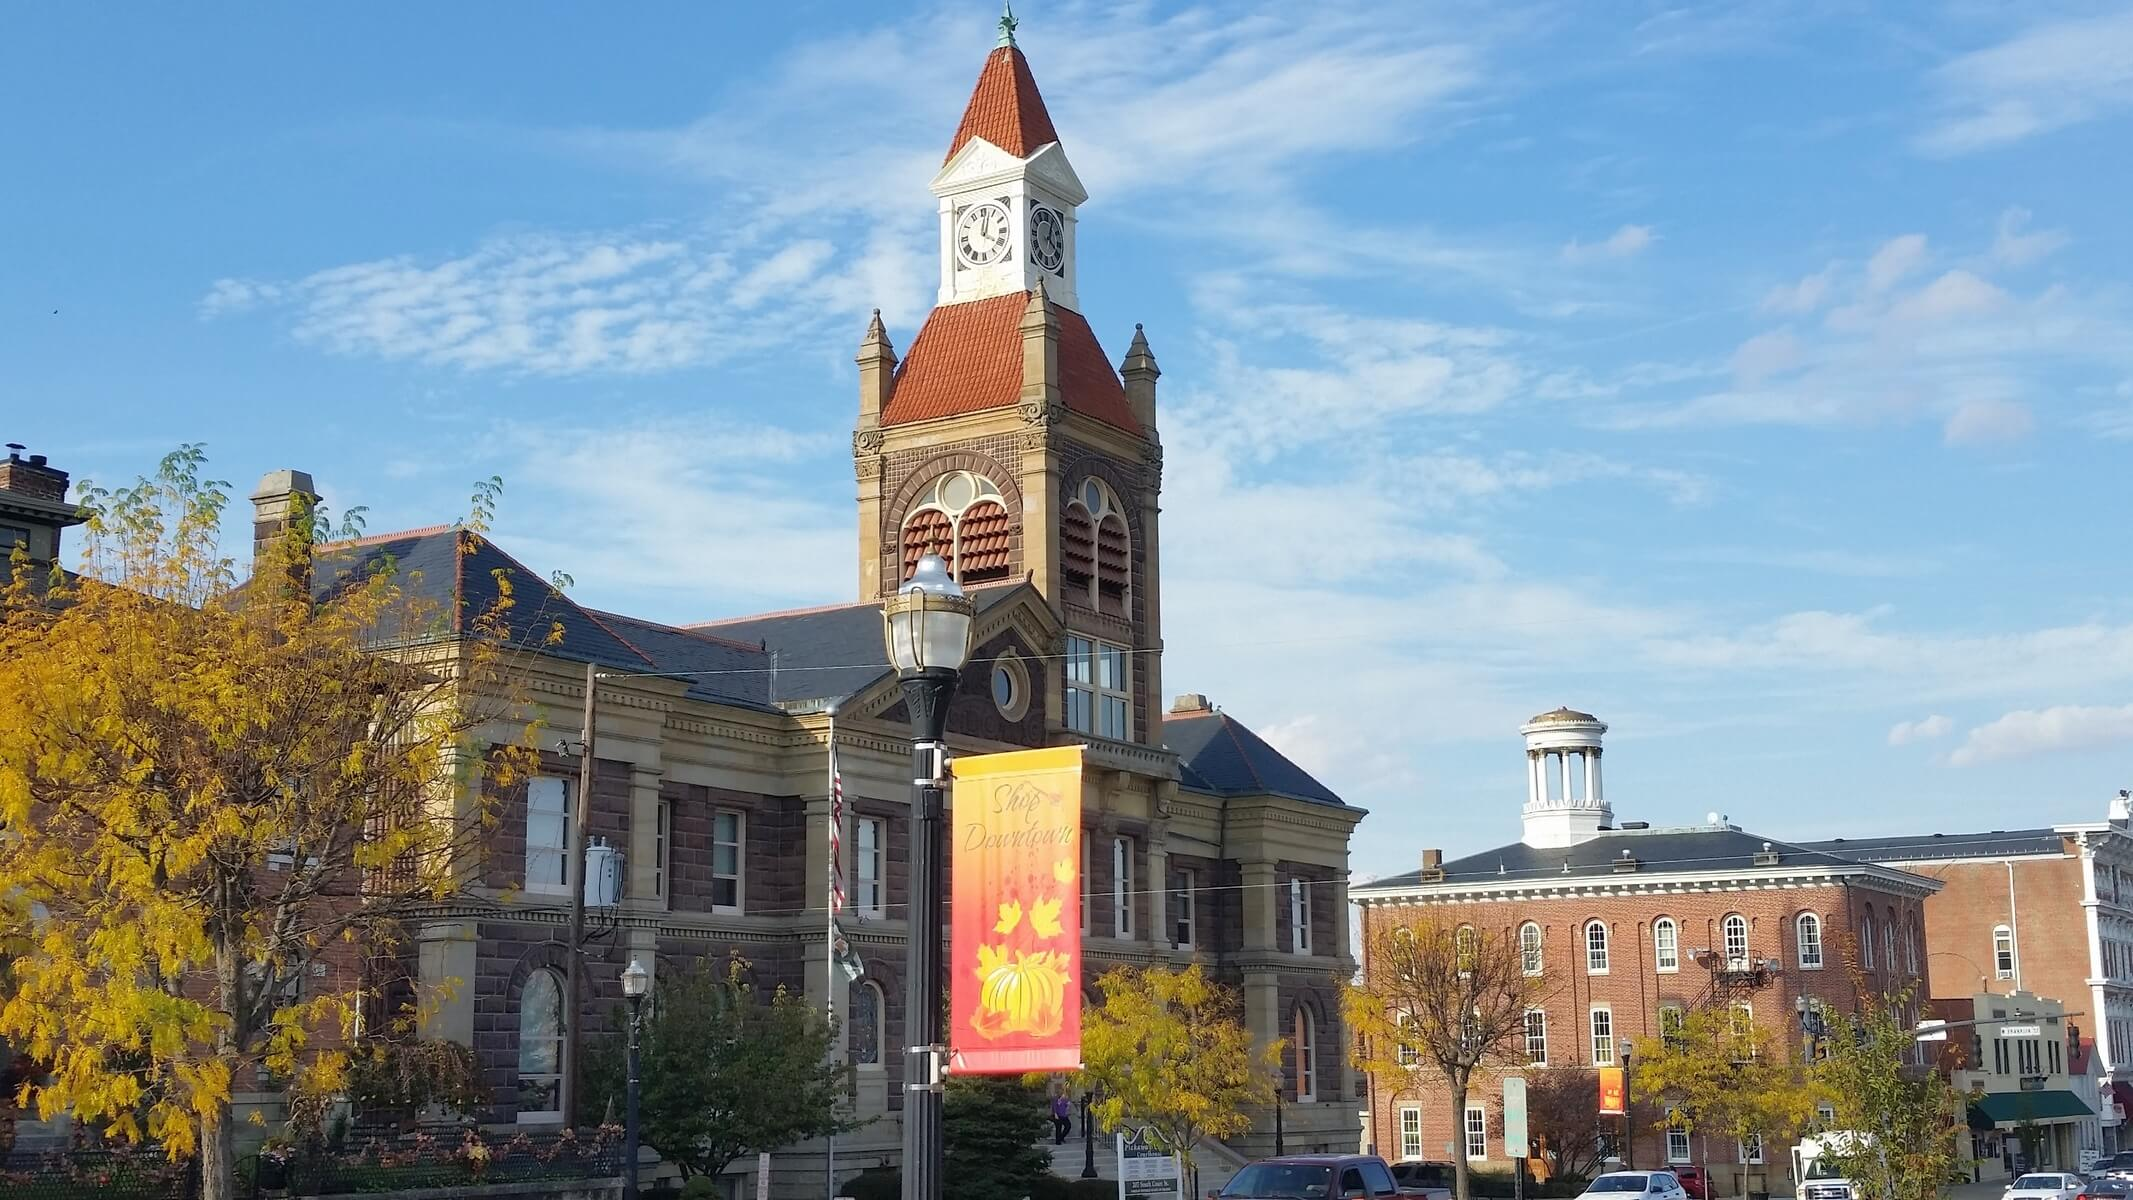 Historical downtown Circleville Ohio